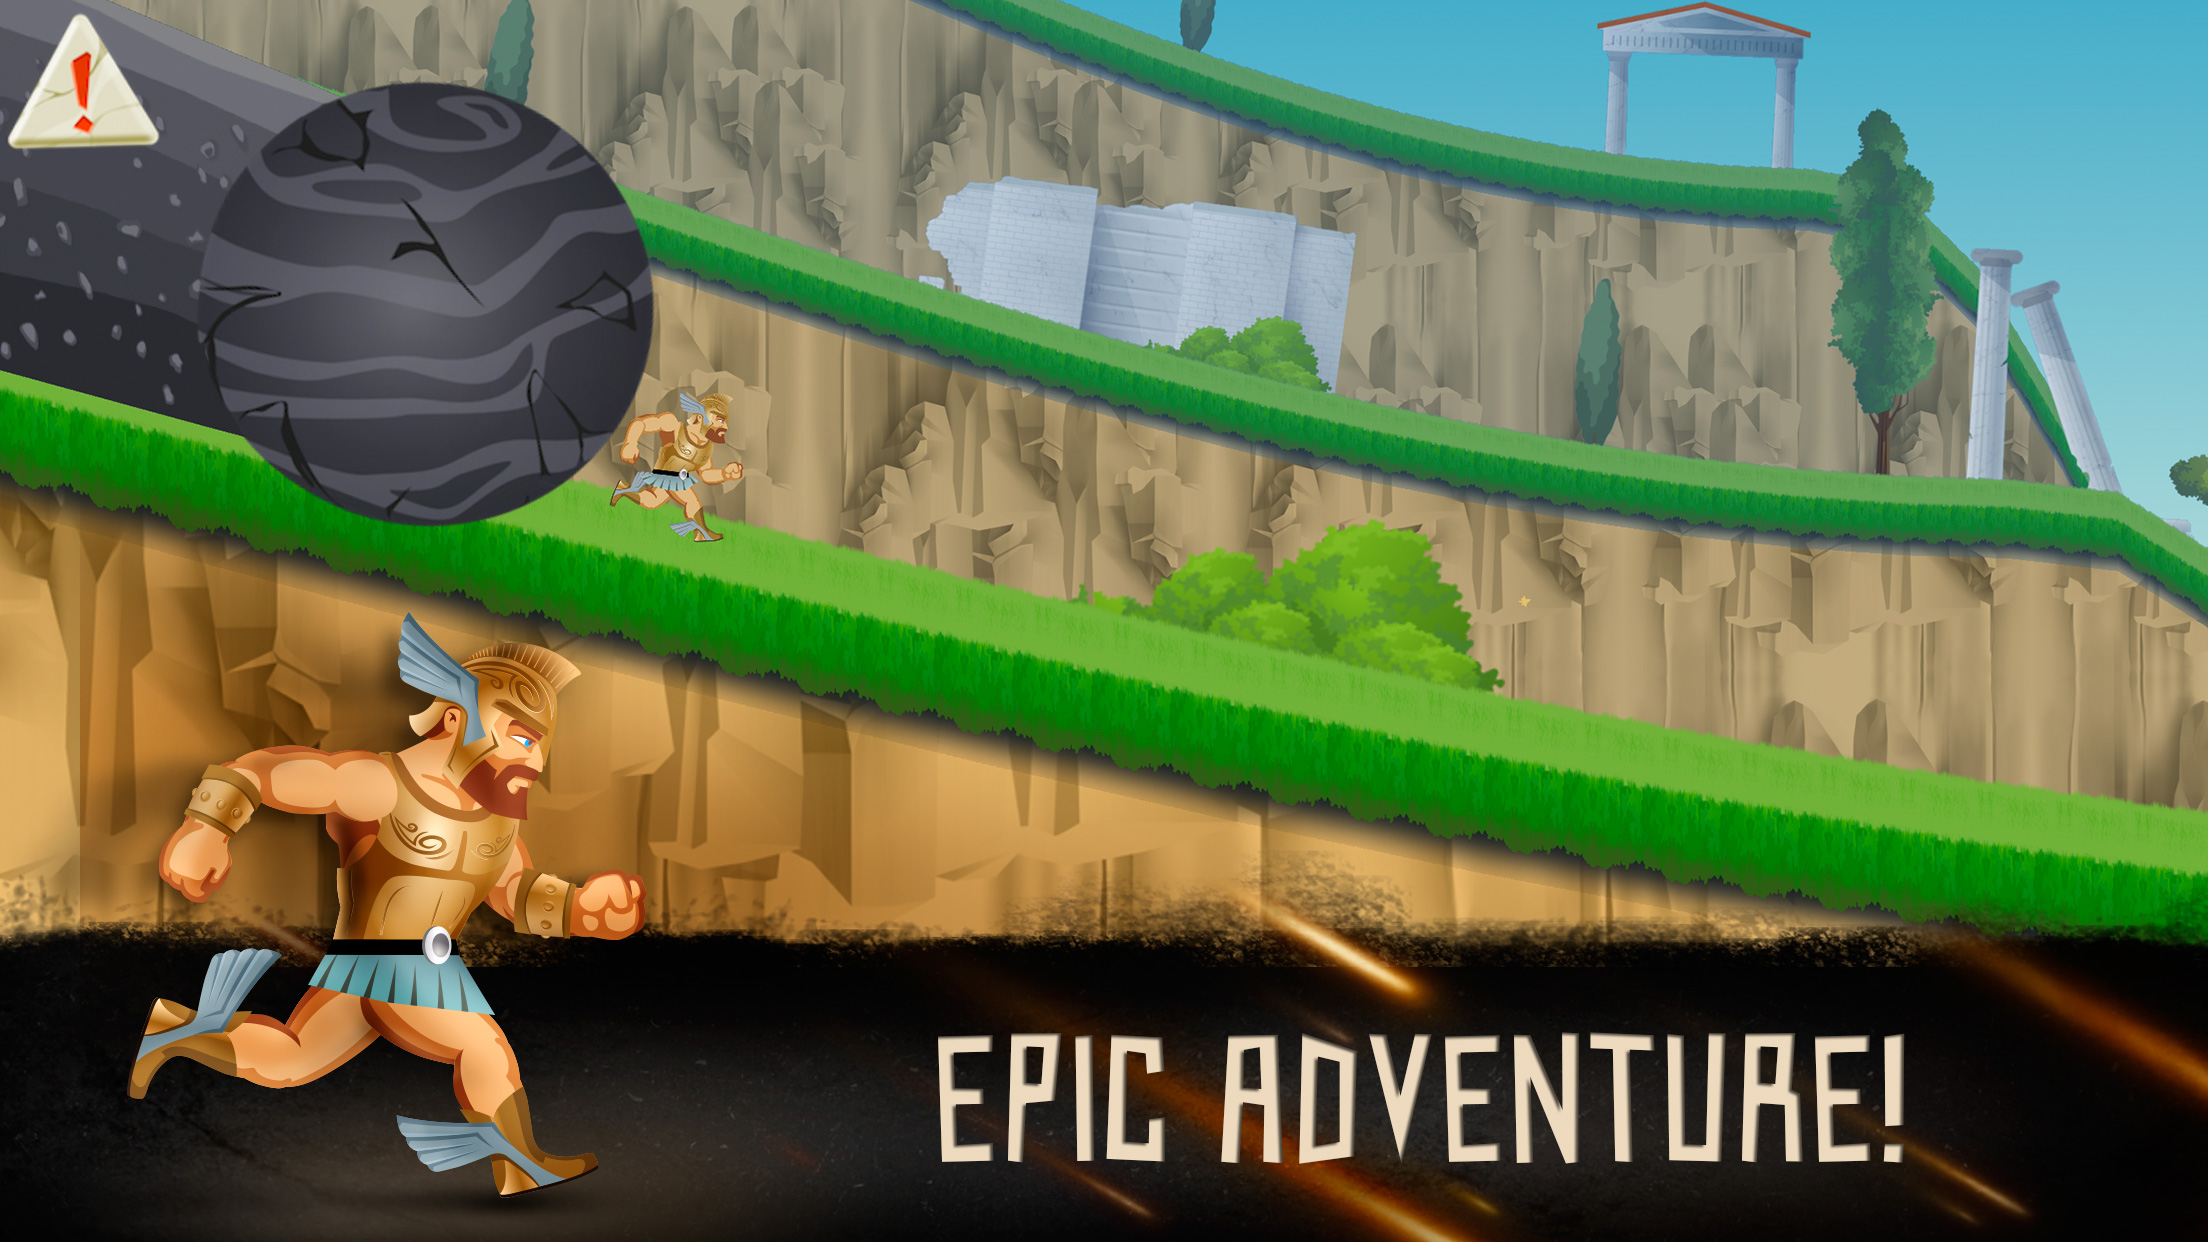 Sisyphus Job - Epic Adventure Screenshot